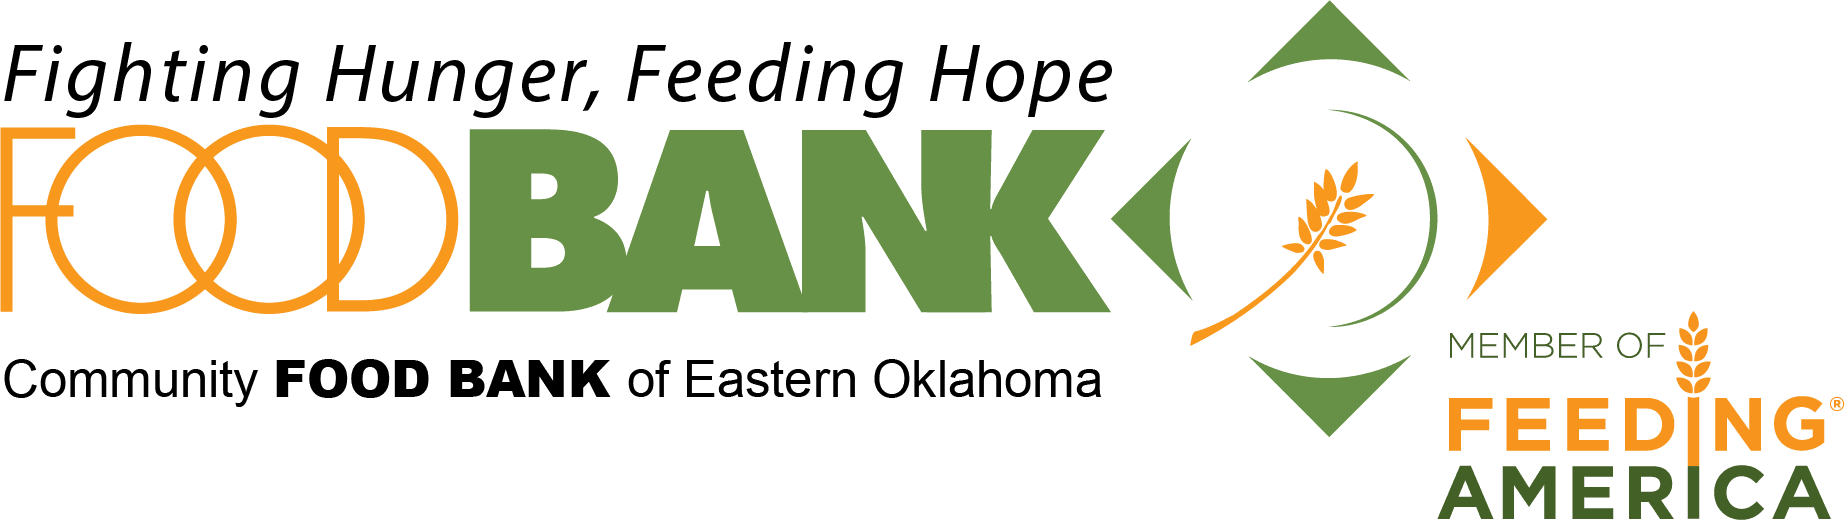 Community Food Bank of EAstern Oklahoma - McAlester Branch